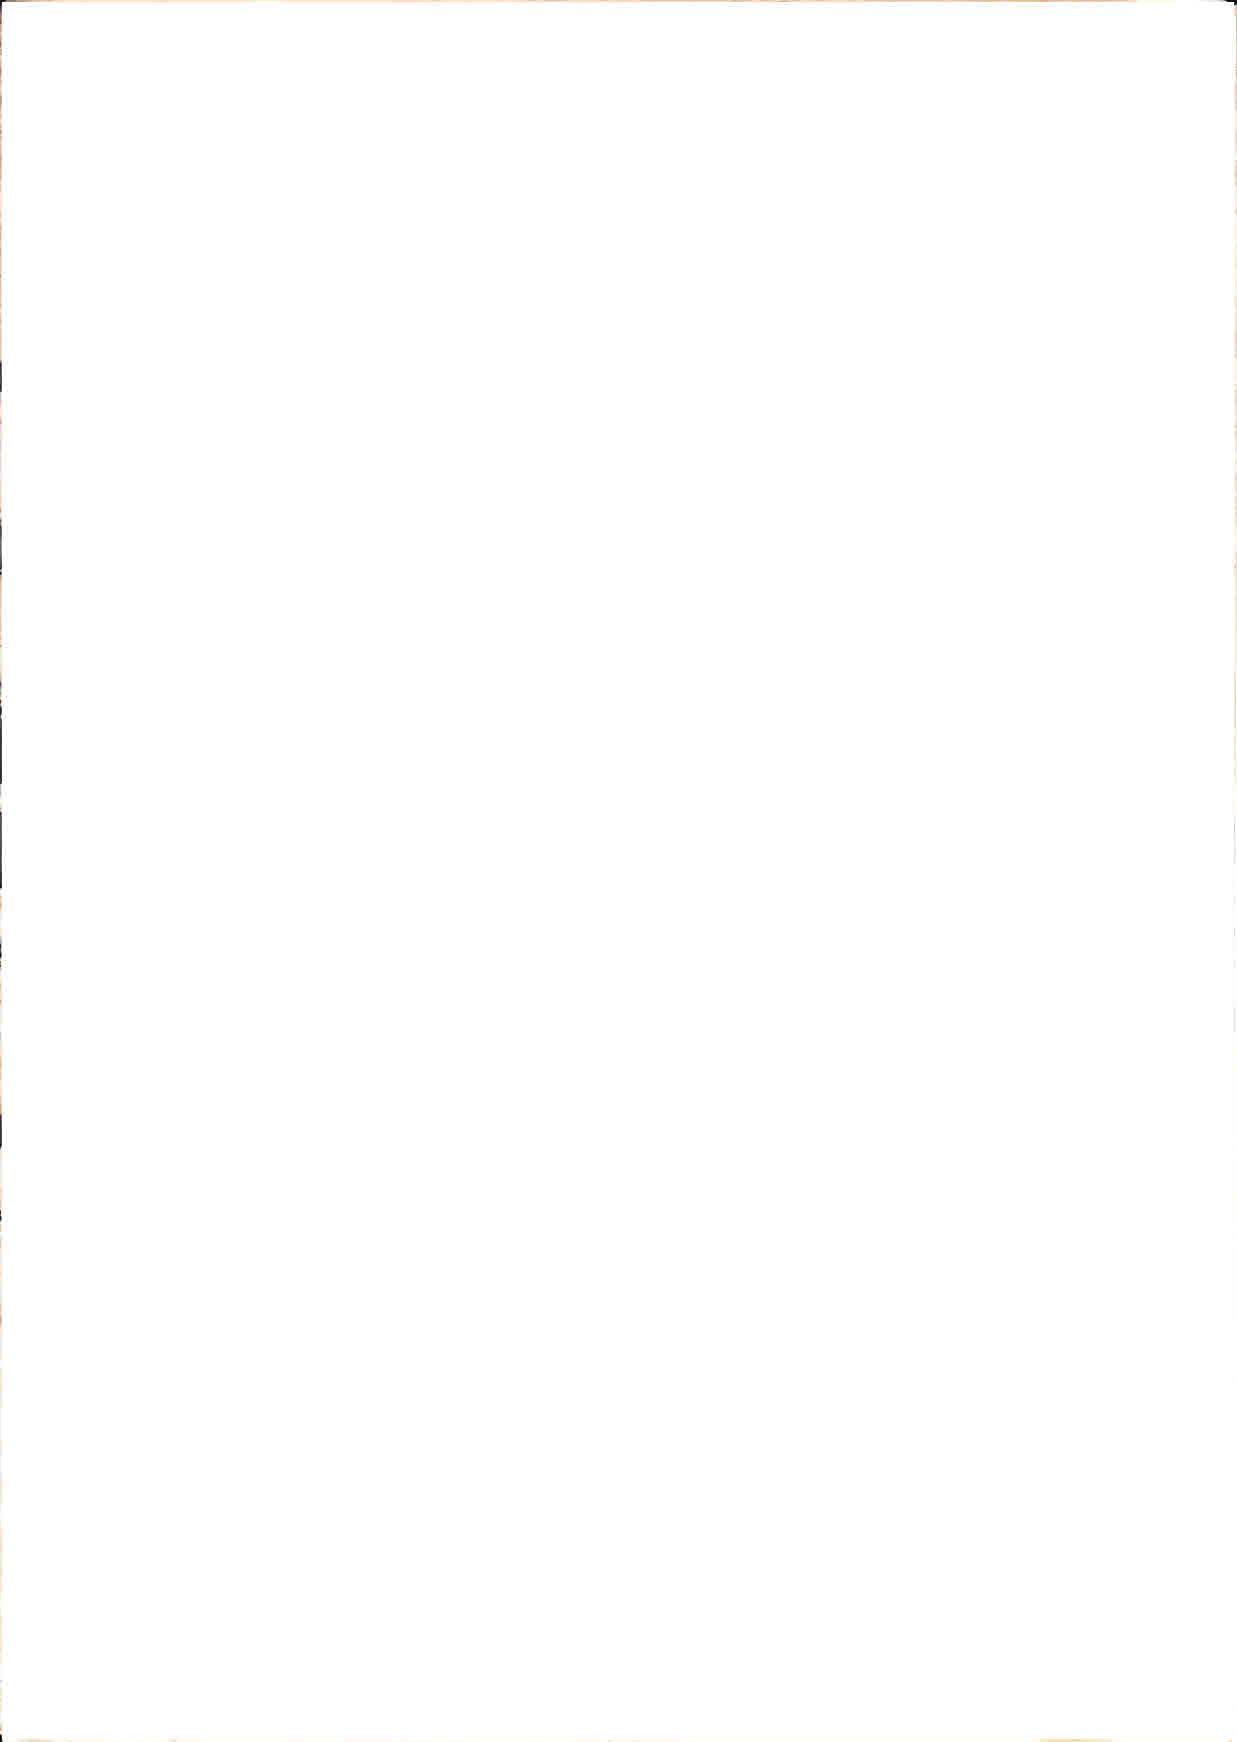 Copy 4 of Viva_a_Revolucao